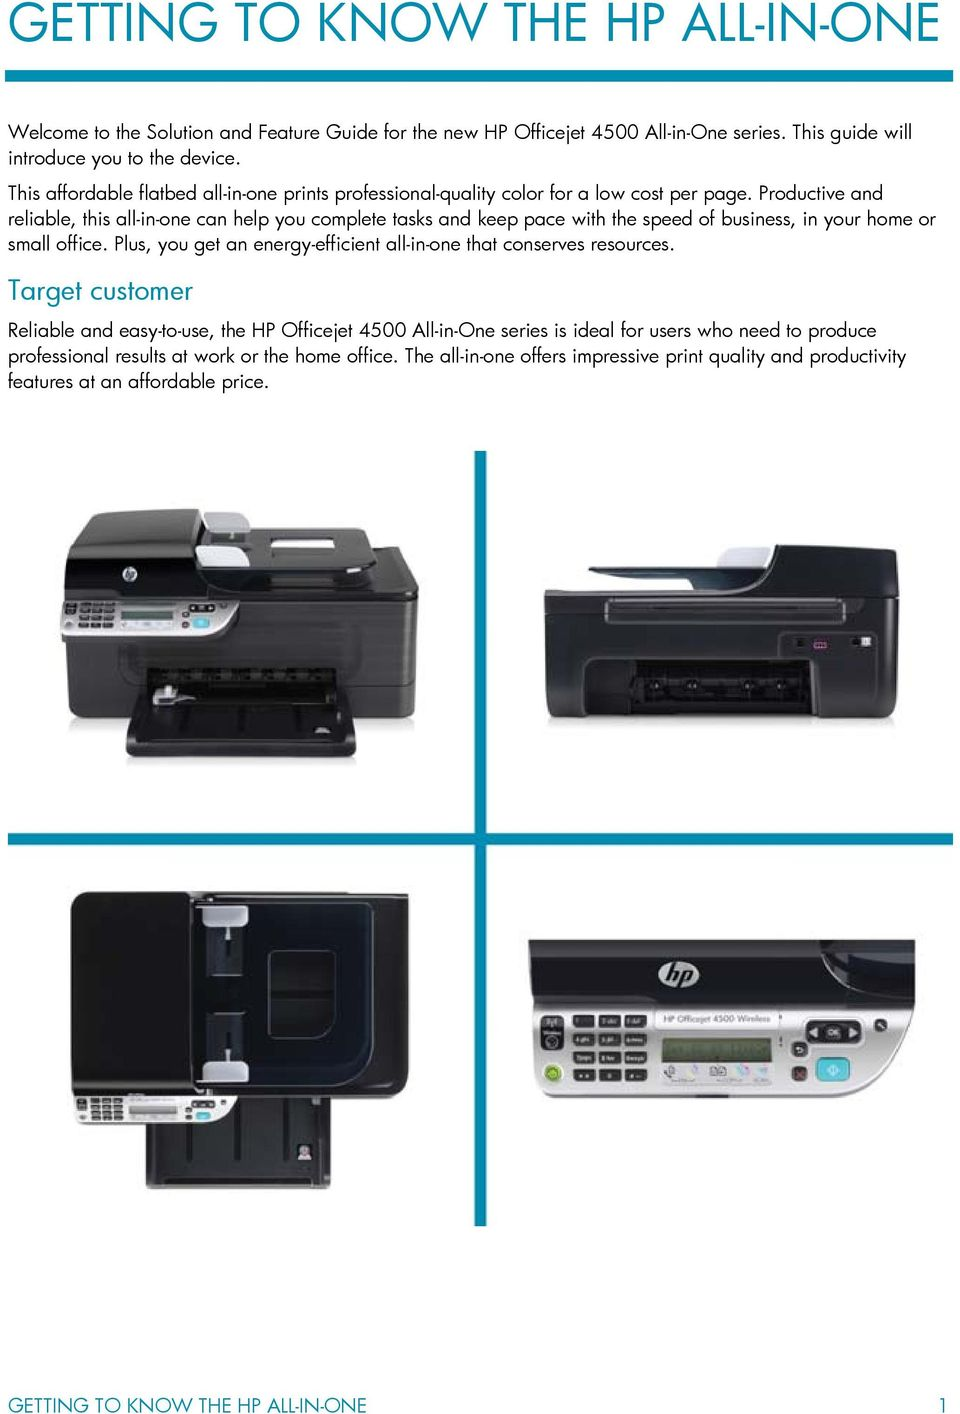 HP Officejet 4500 All-in-One series - PDF